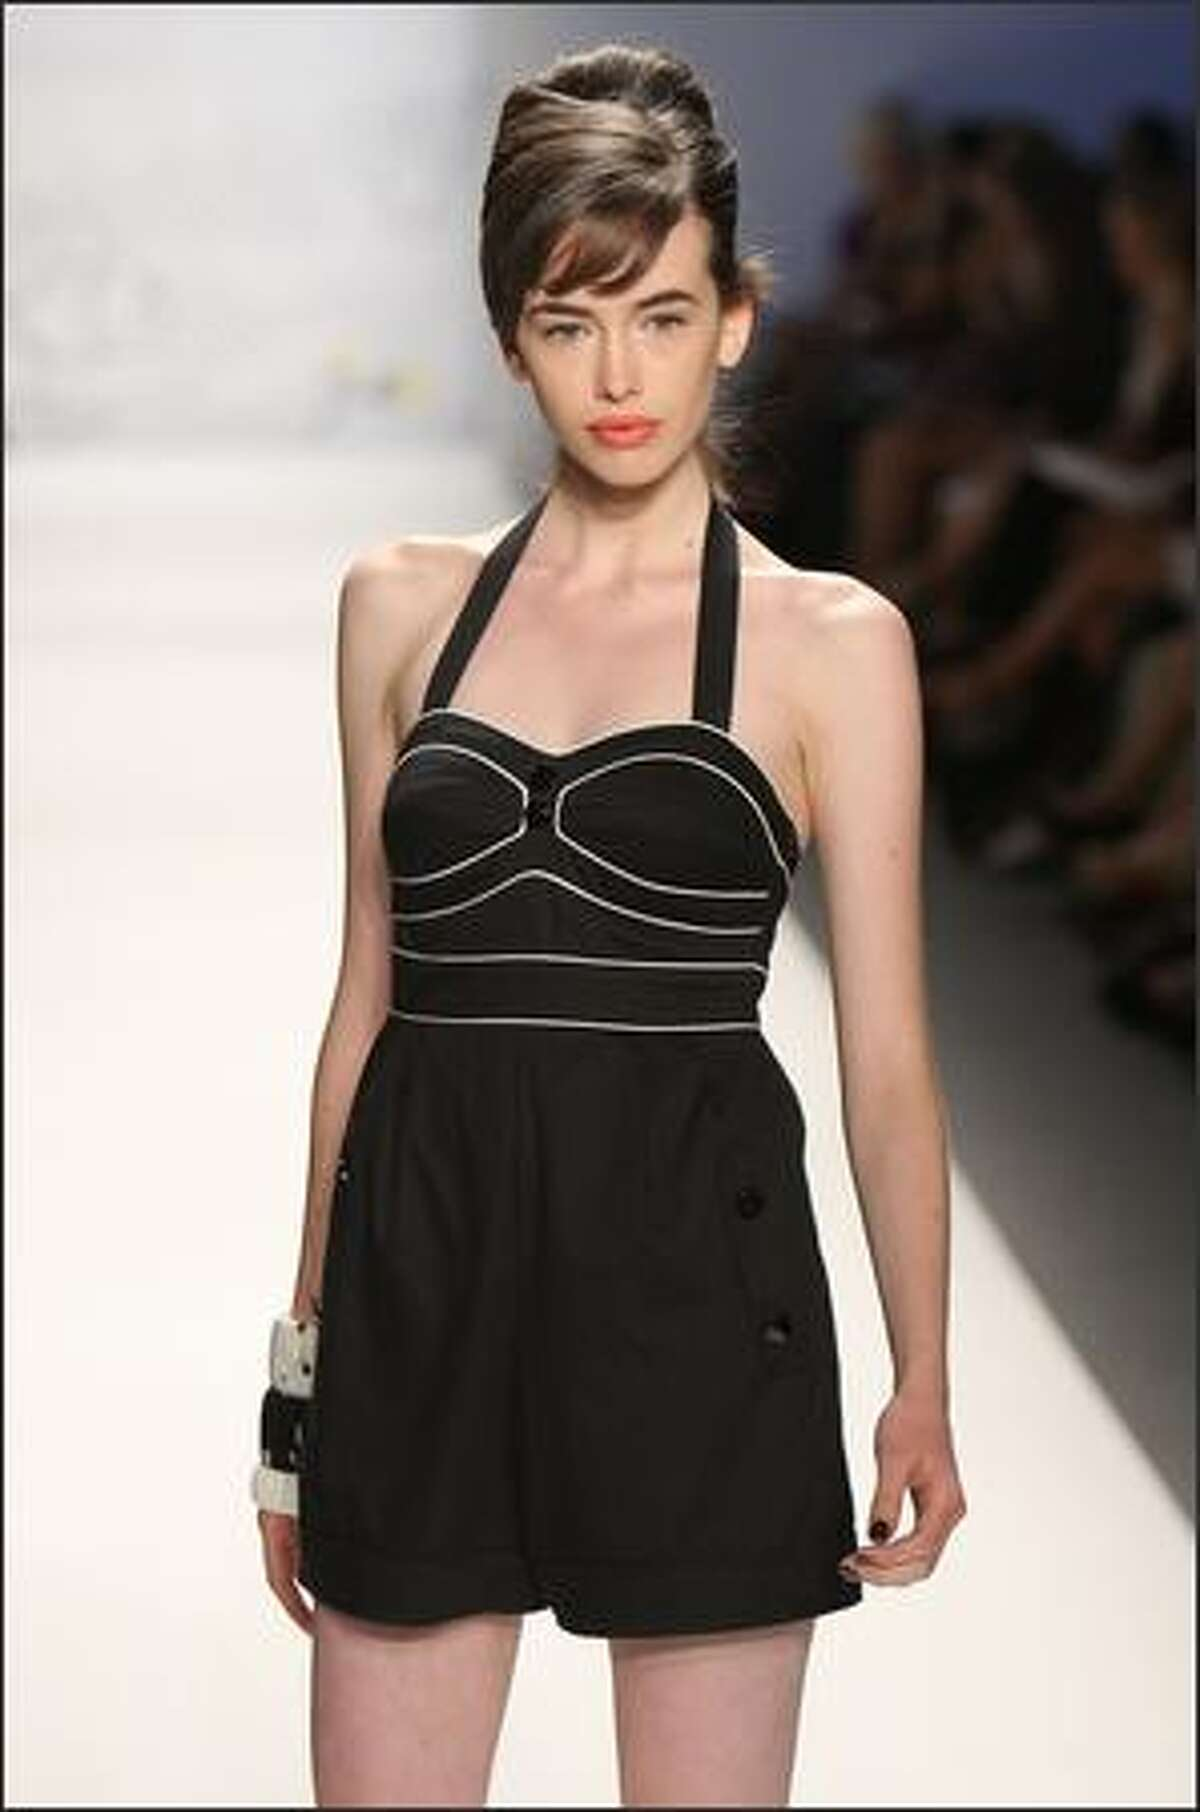 A model walks the runway at the Twinkle By Wenlan Spring 2009 fashion show during Mercedes-Benz Fashion Week at The Salon, Bryant Park, on Monday in New York City.